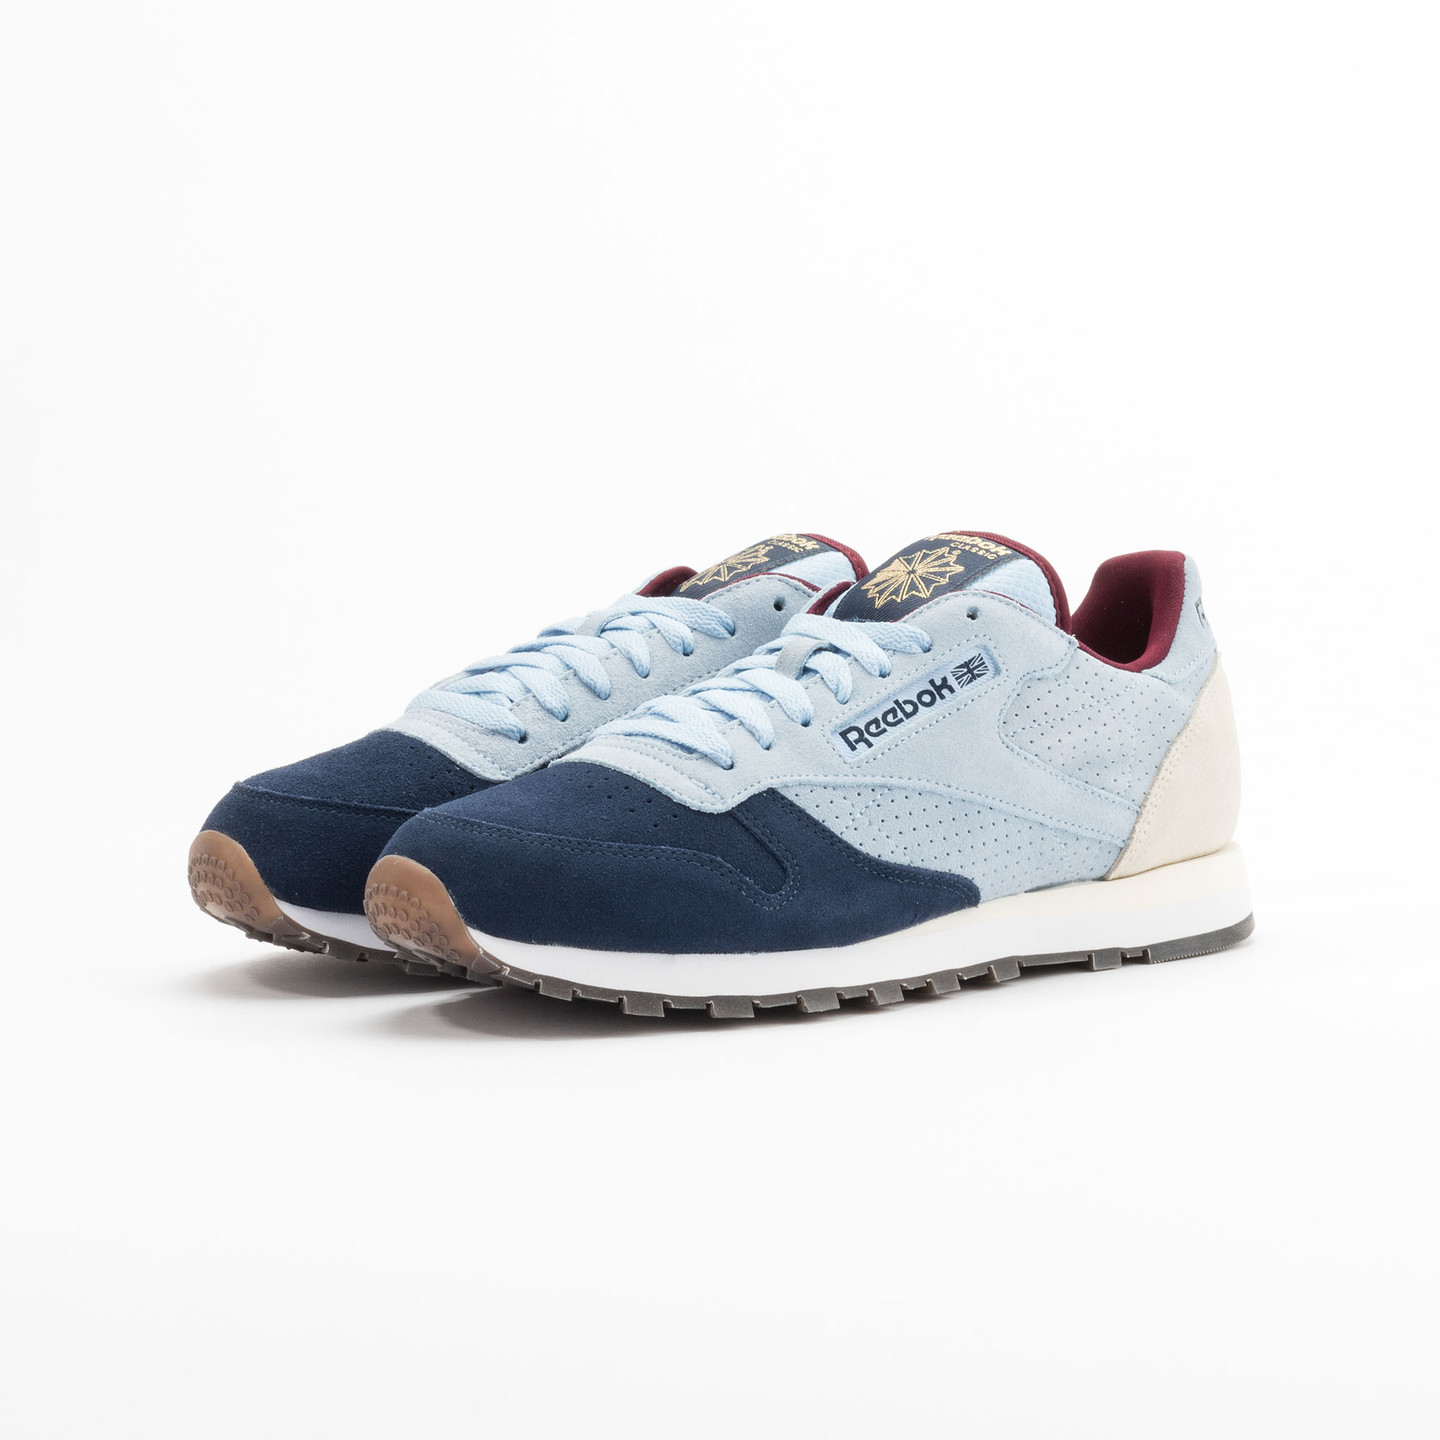 Reebok Classic Leather Int Navy / Light Blue / Sand V66829-44.5